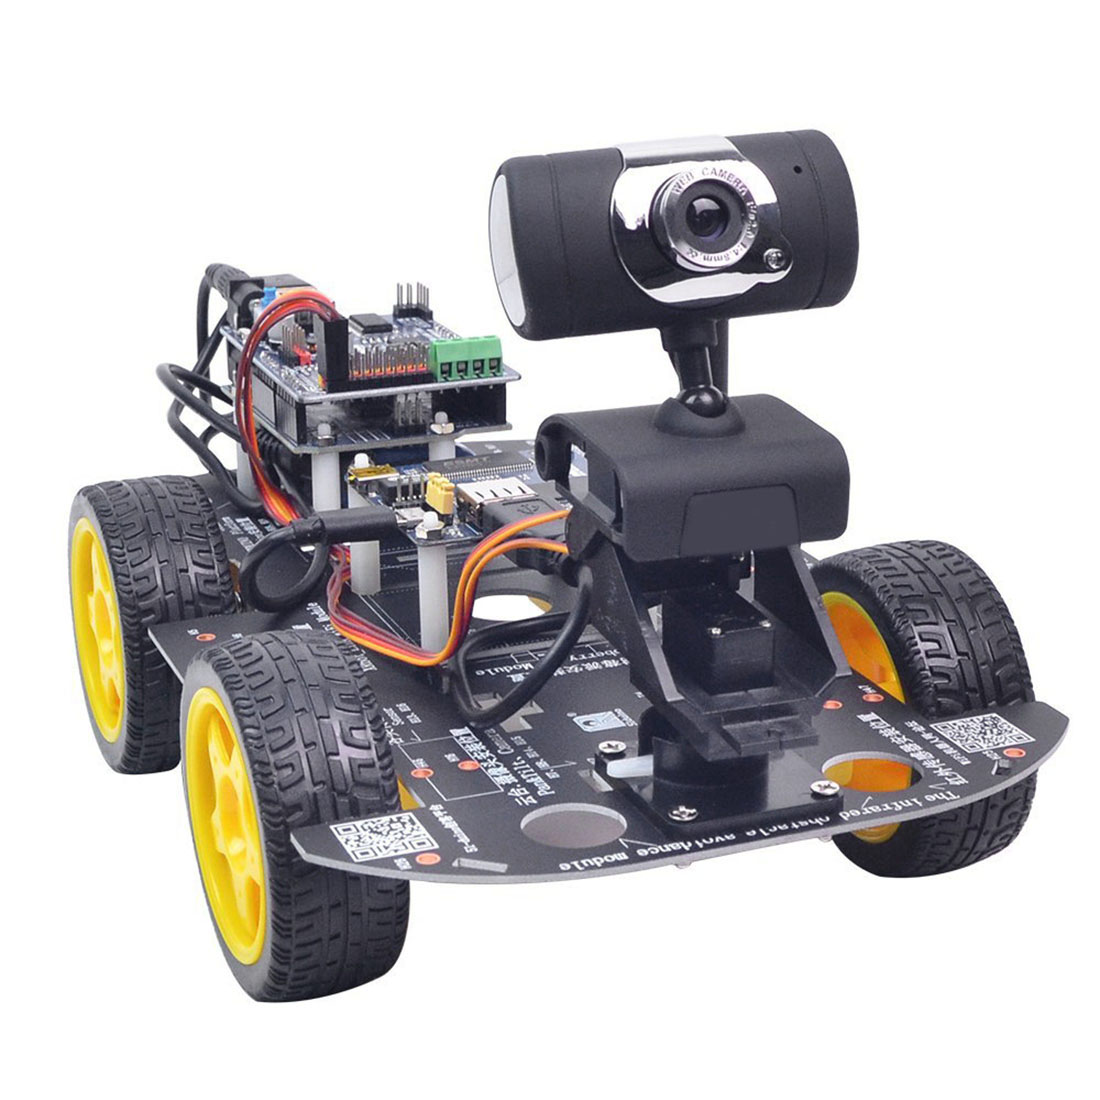 Programmable Robot Toy DIY Wifi Steam Car With Graphic Programming XR BLOCK Linux For Arduino UNO R3 (Standard Version)